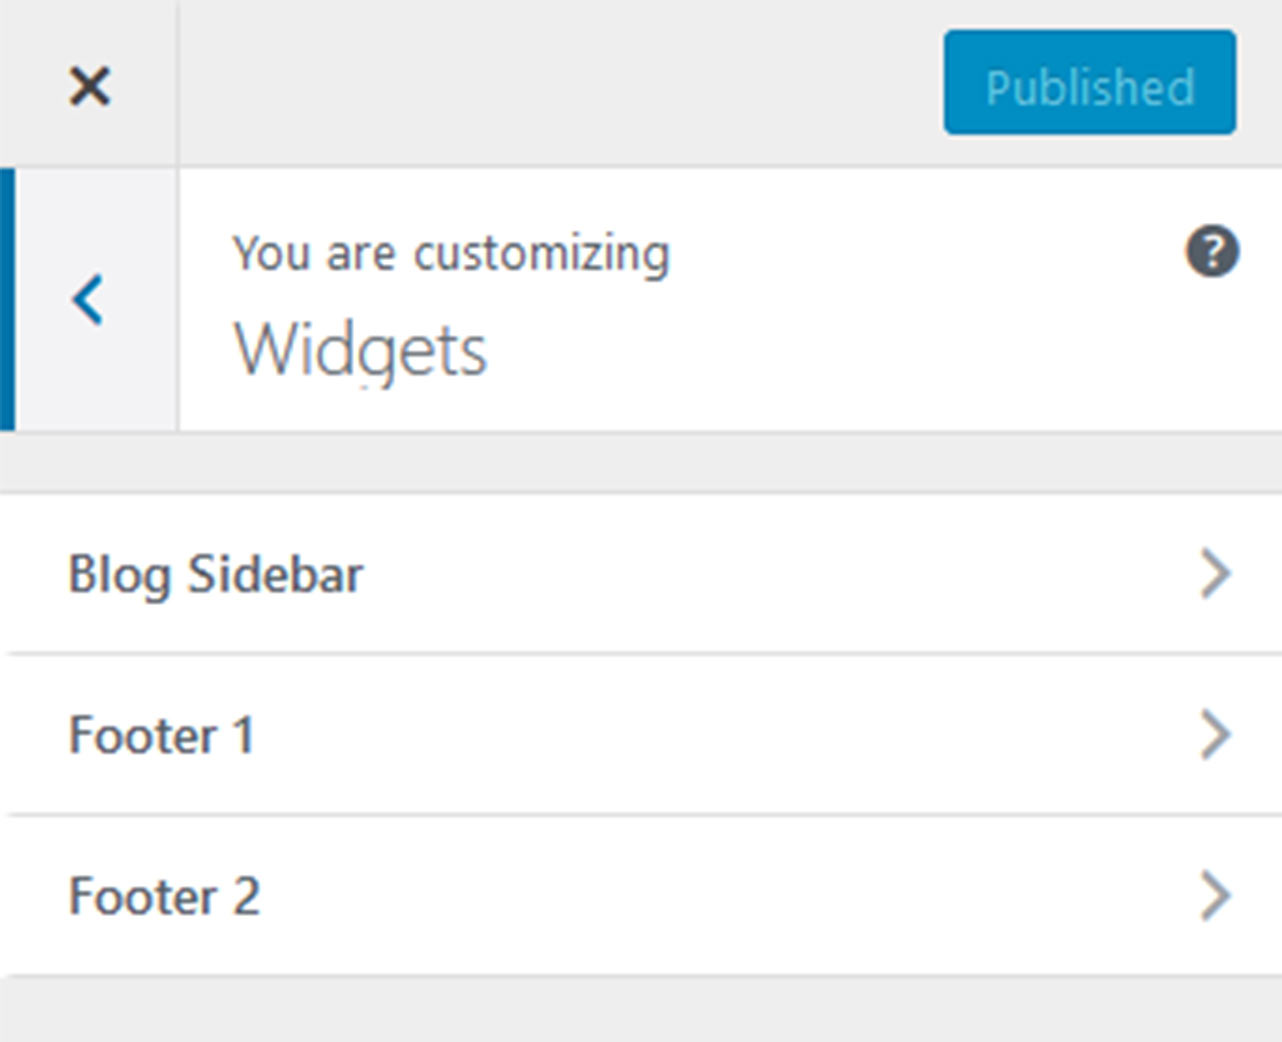 customizing widgets